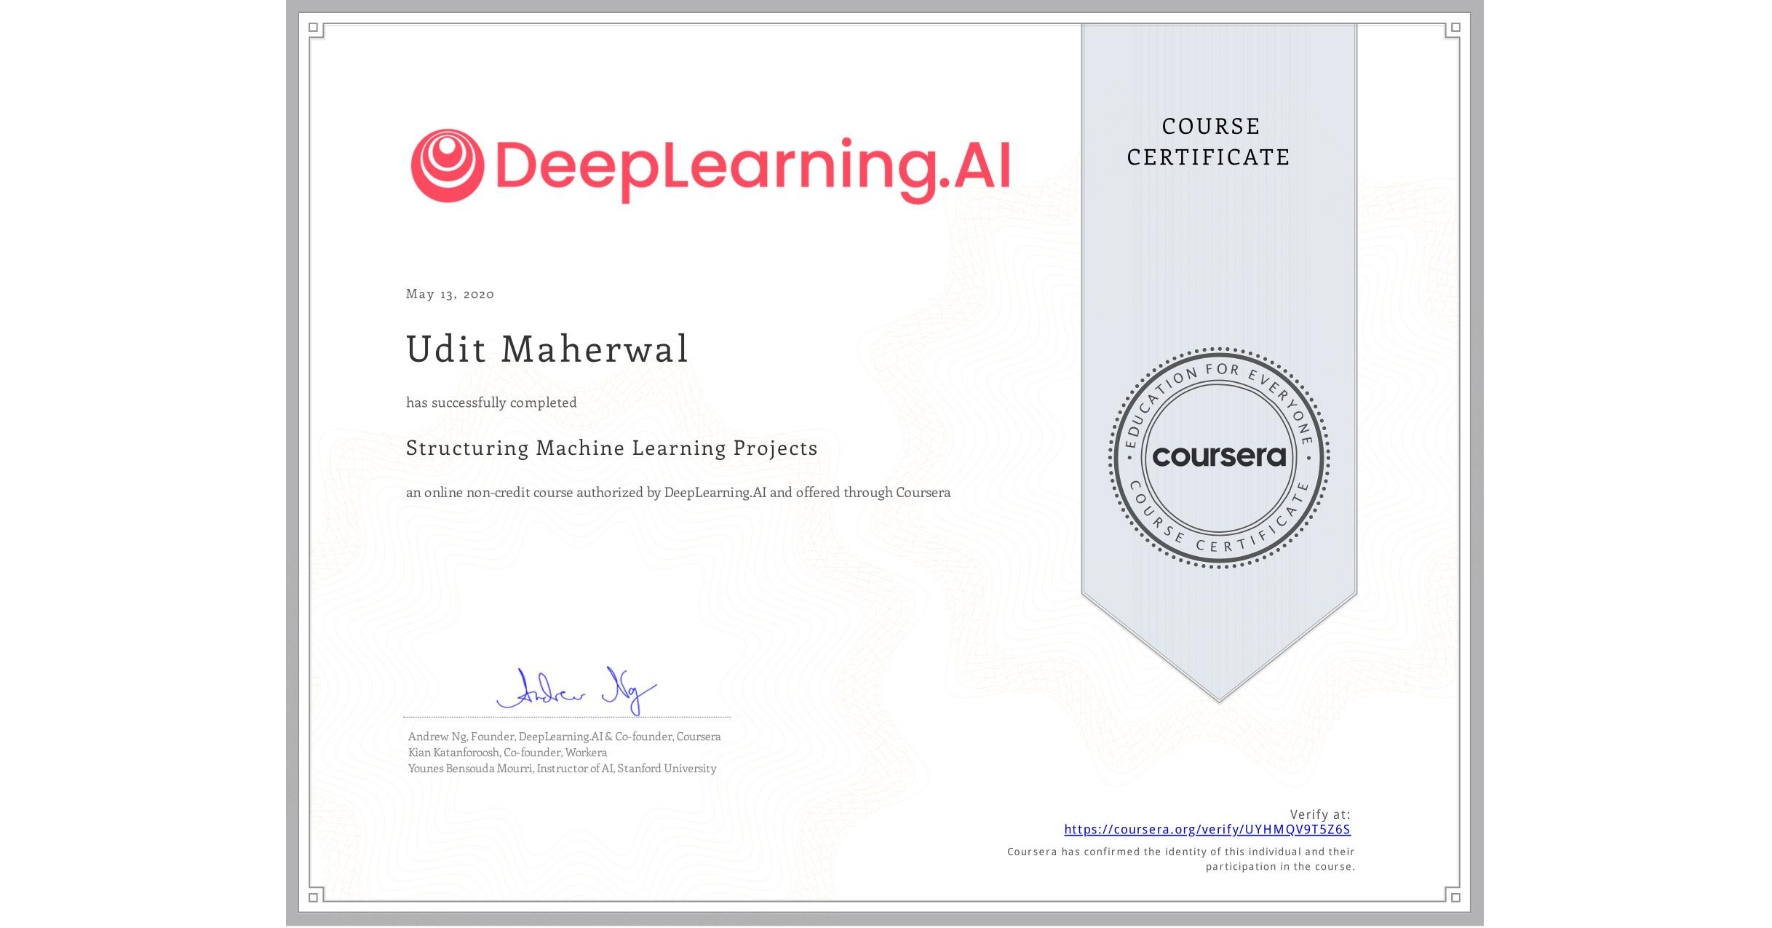 View certificate for Udit Maherwal, Structuring Machine Learning Projects, an online non-credit course authorized by DeepLearning.AI and offered through Coursera